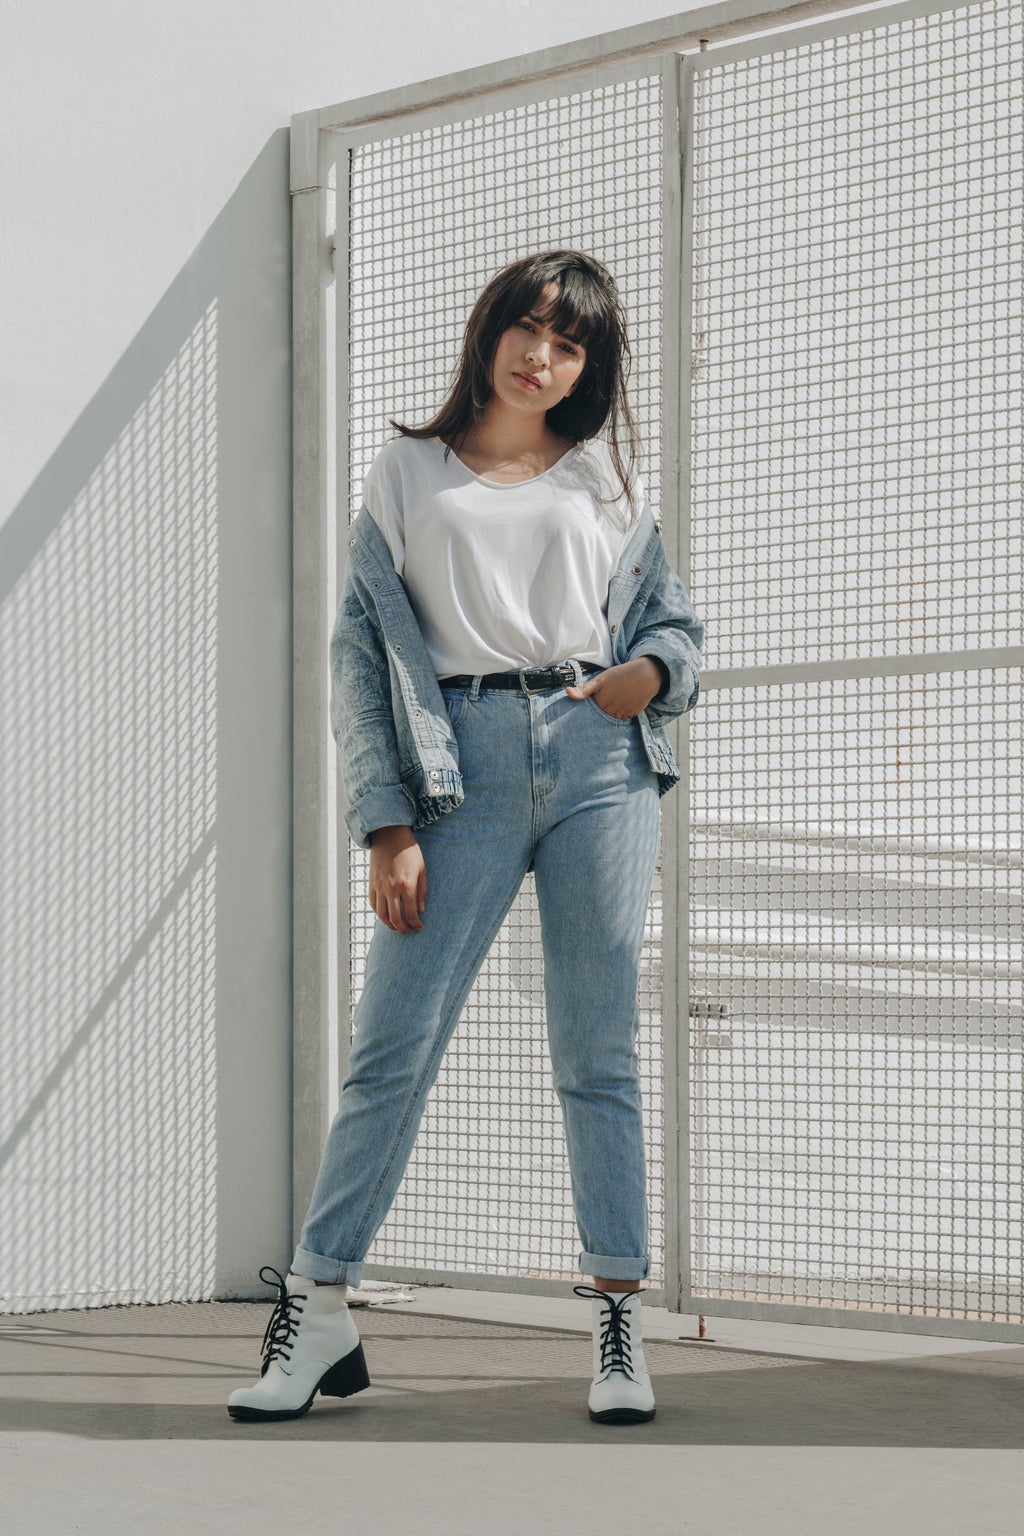 woman in white shirt and jeans in front of white wire fence